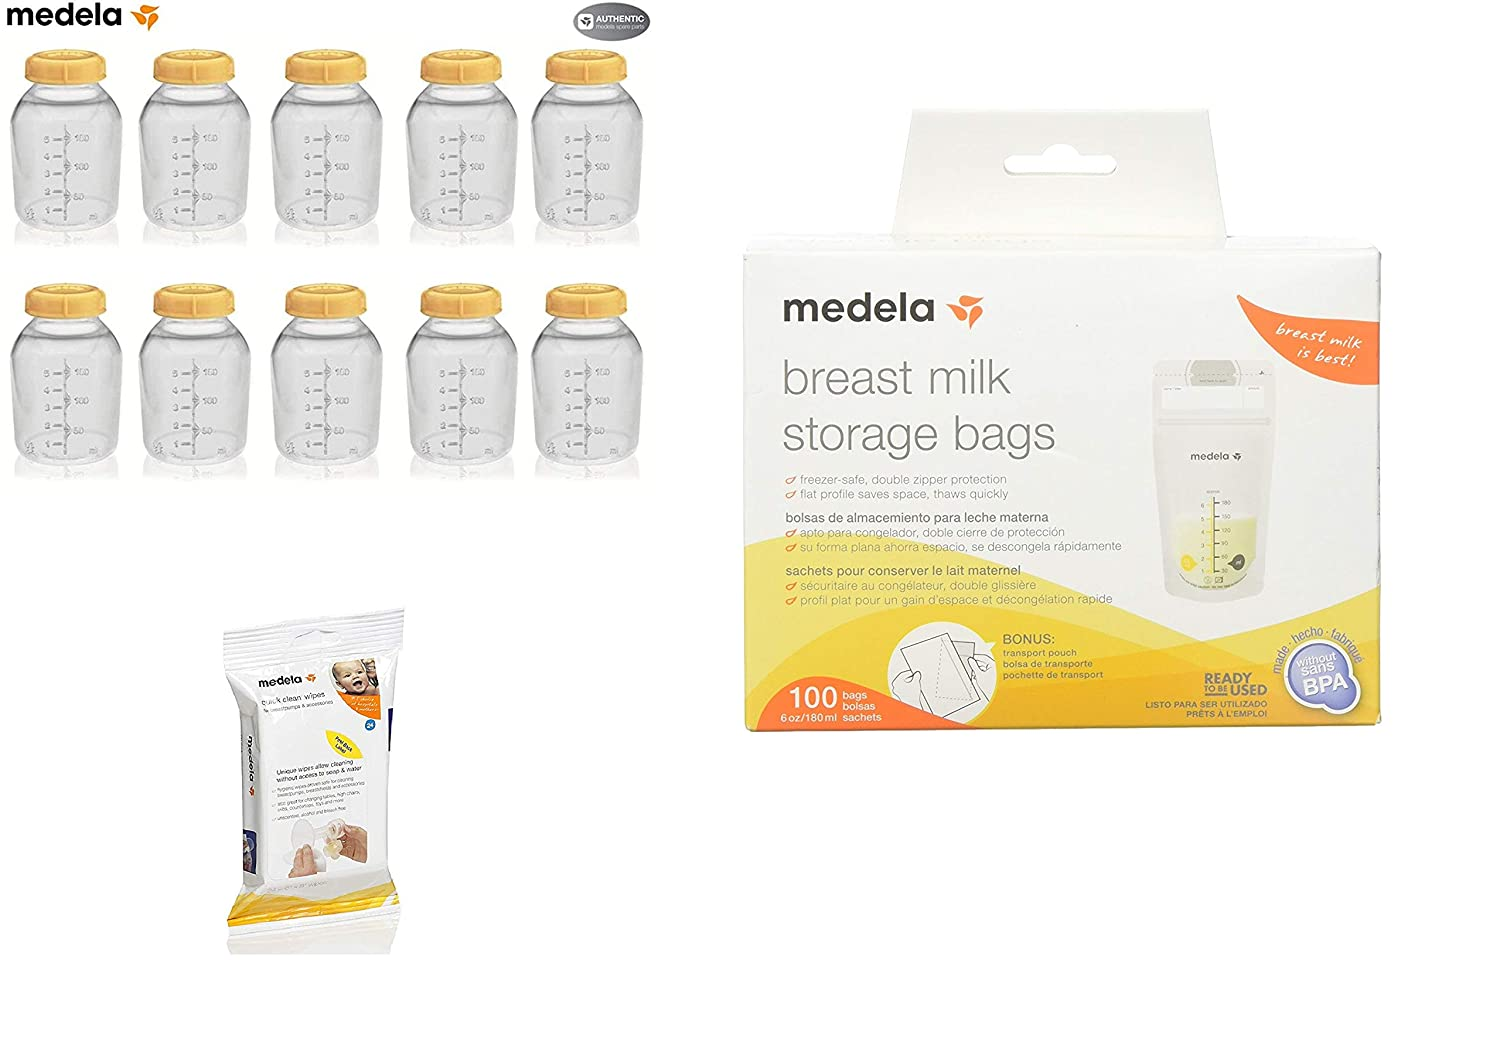 Amazon.com: Medela 150 Ml - Estuche para botellas de ...